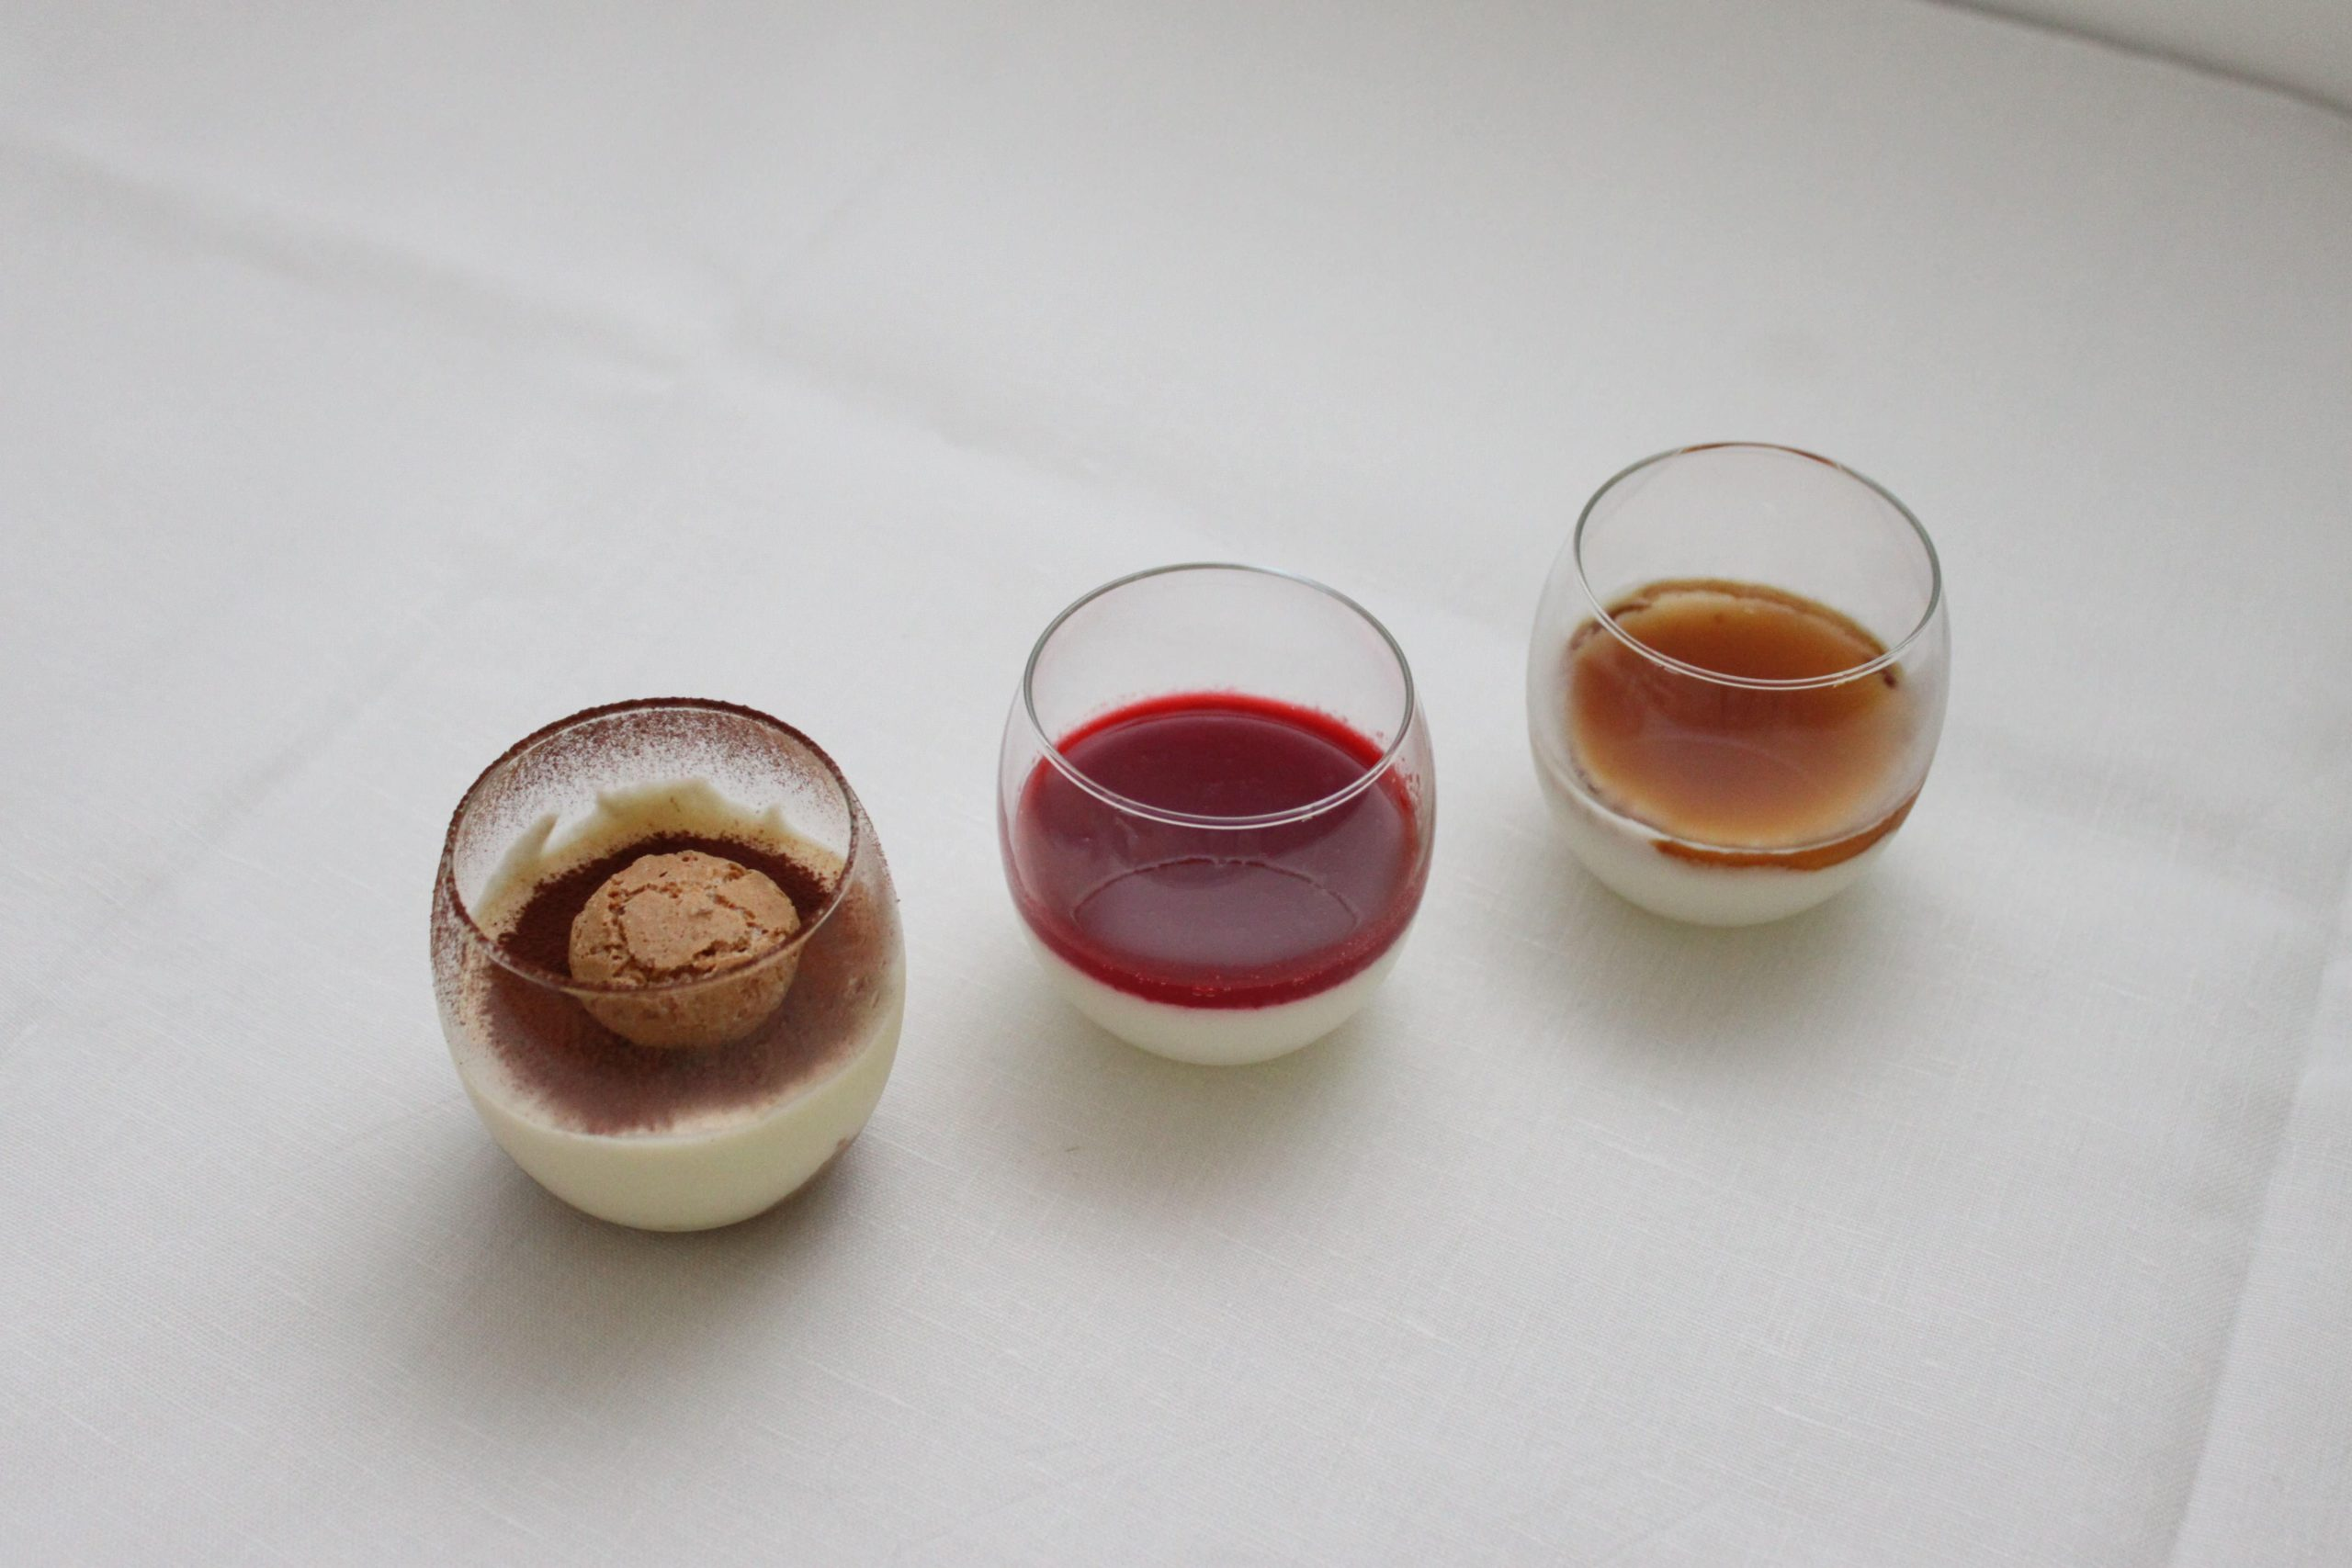 Trio de verrines (tiramisù, panna cotta fruits rouges, panna cotta caramel)